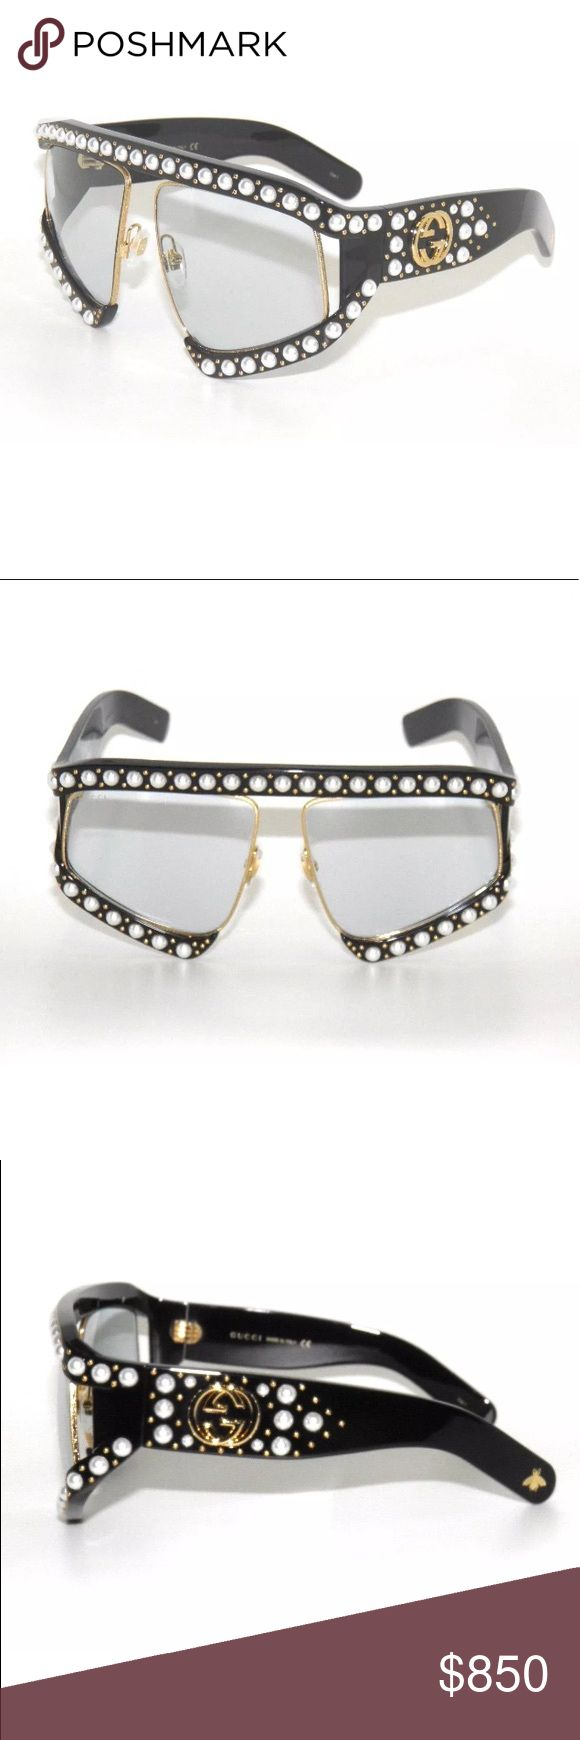 Gucci Pearl Studded Butterfly Sunglasses 0234S Gucci Brand new, black frame with pearls and light blue lenses. Comes with original Gucci Case,Cloth,Papers. SIZE: 63/14/130 NEW MODEL!!!! Gucci Accessories Sunglasses